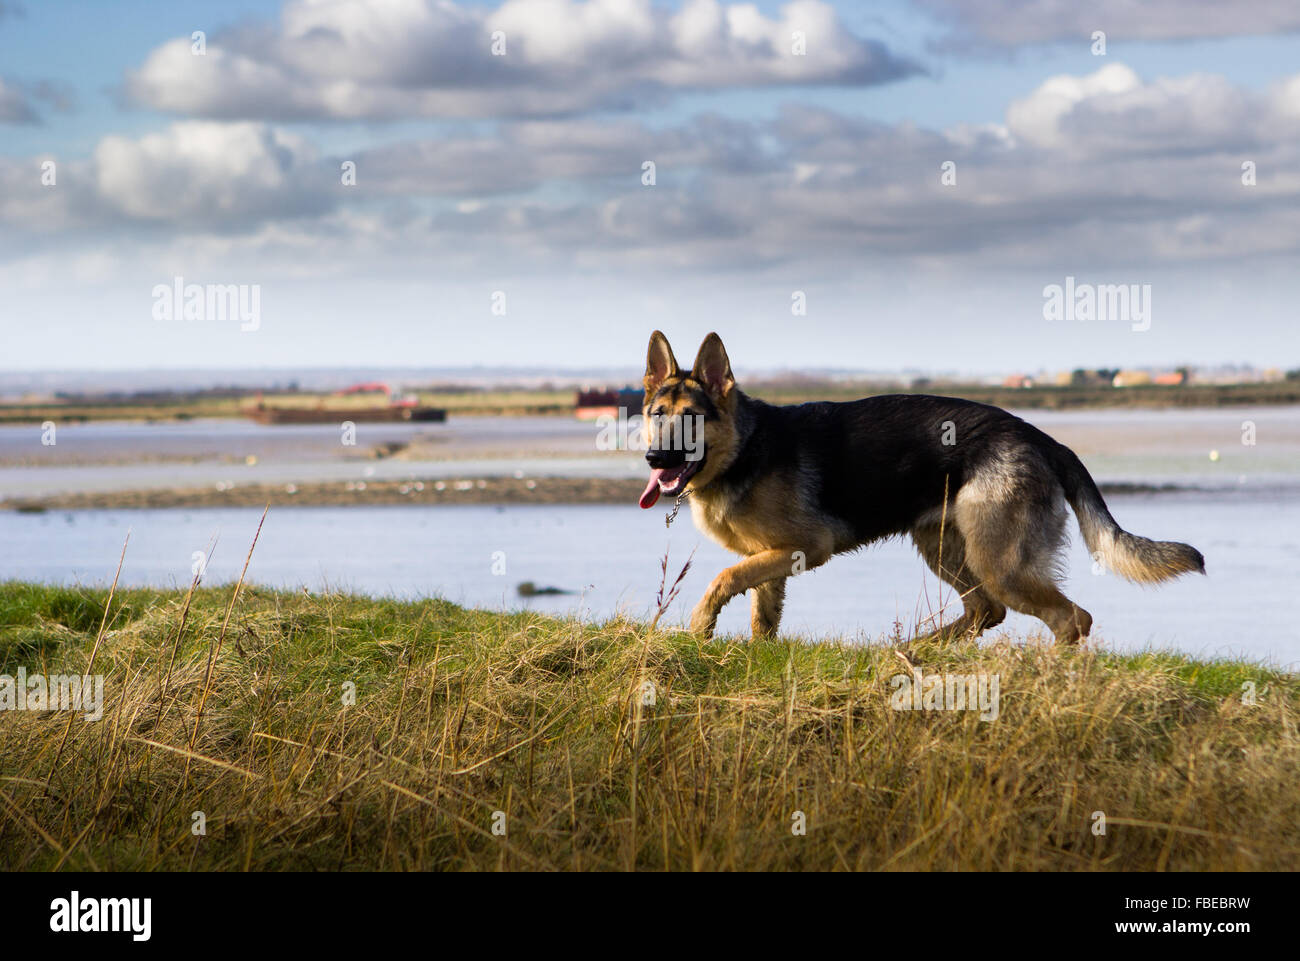 Mayland Stock Photos & Mayland Stock Images - Alamy